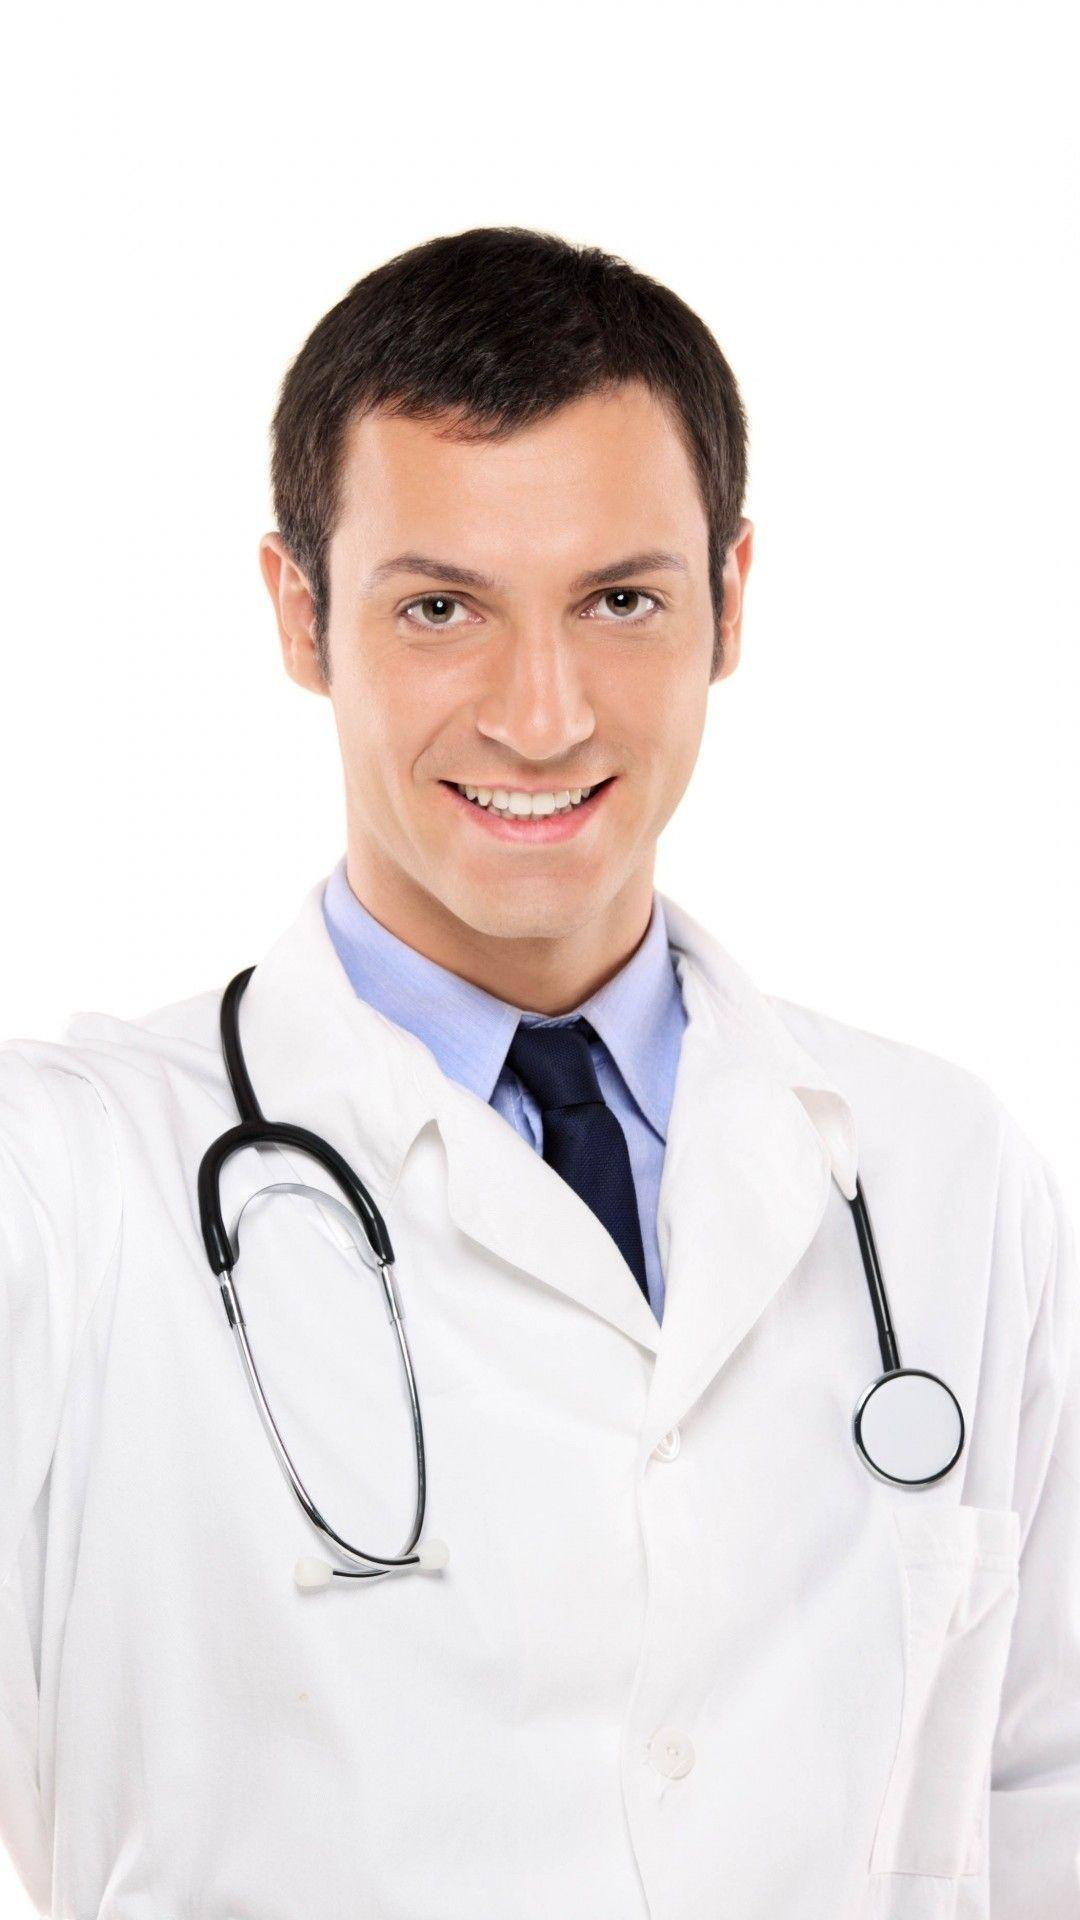 Medical Doctor Wallpapers HD